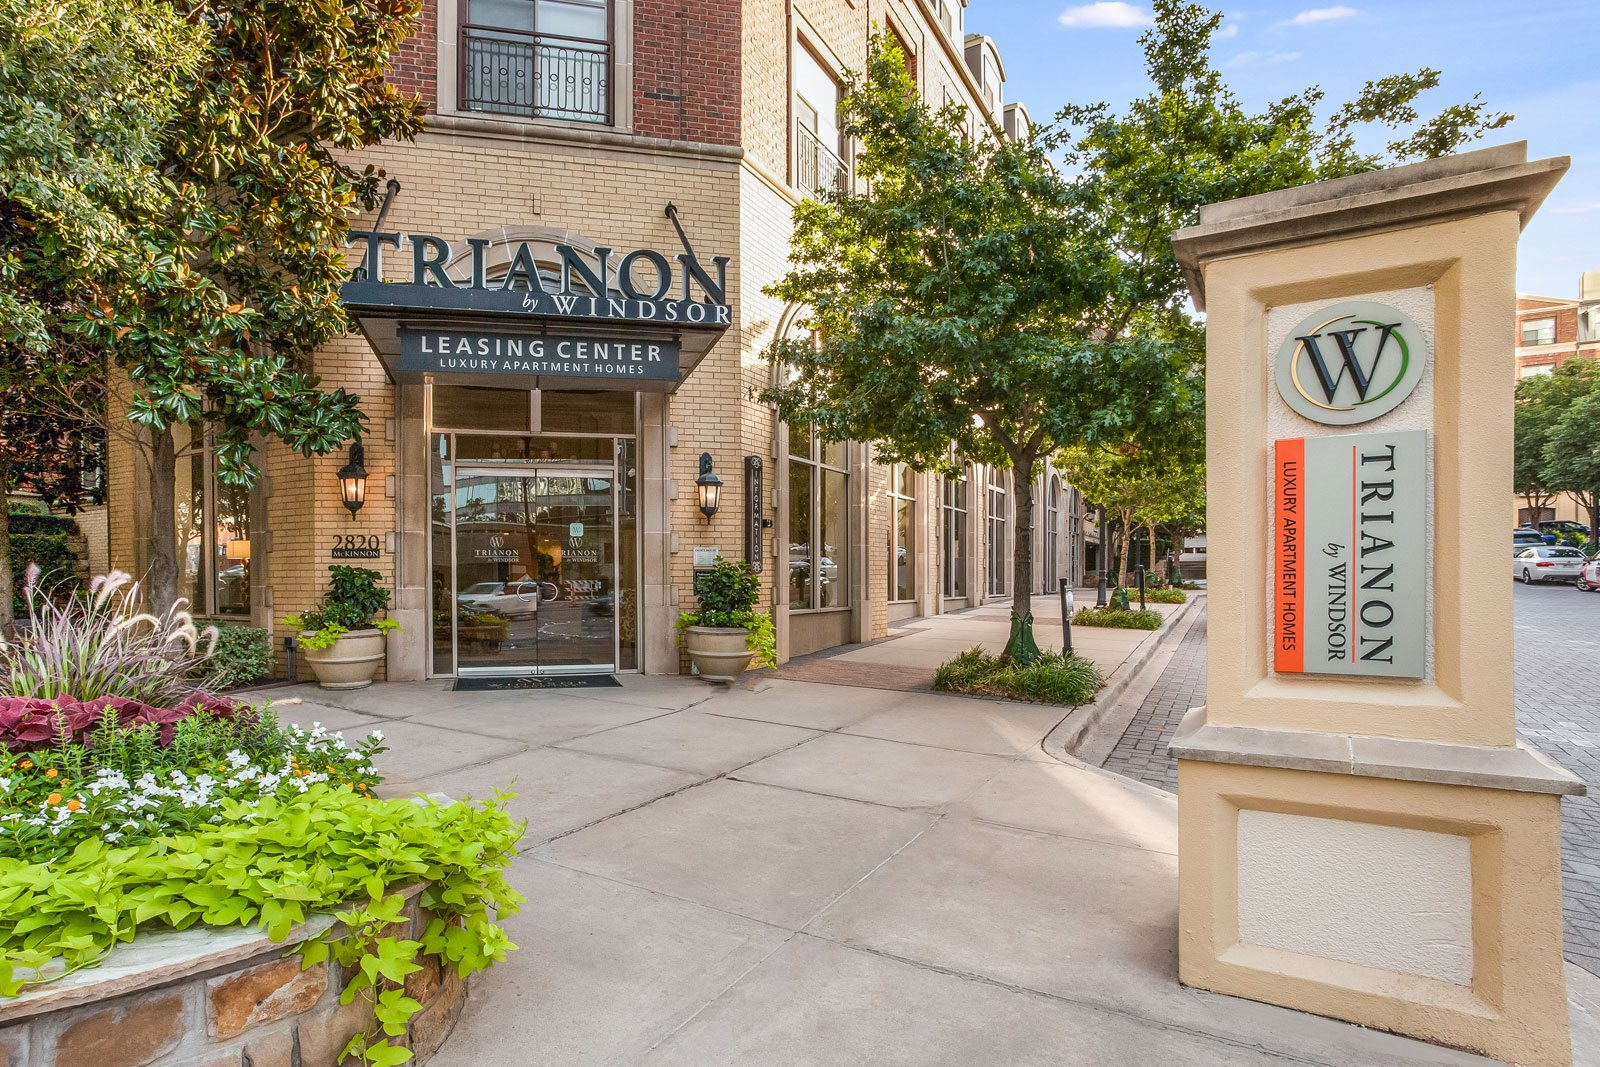 Resort-Style Community with Tree-Lined Streets at Trianon by Windsor, Dallas, TX